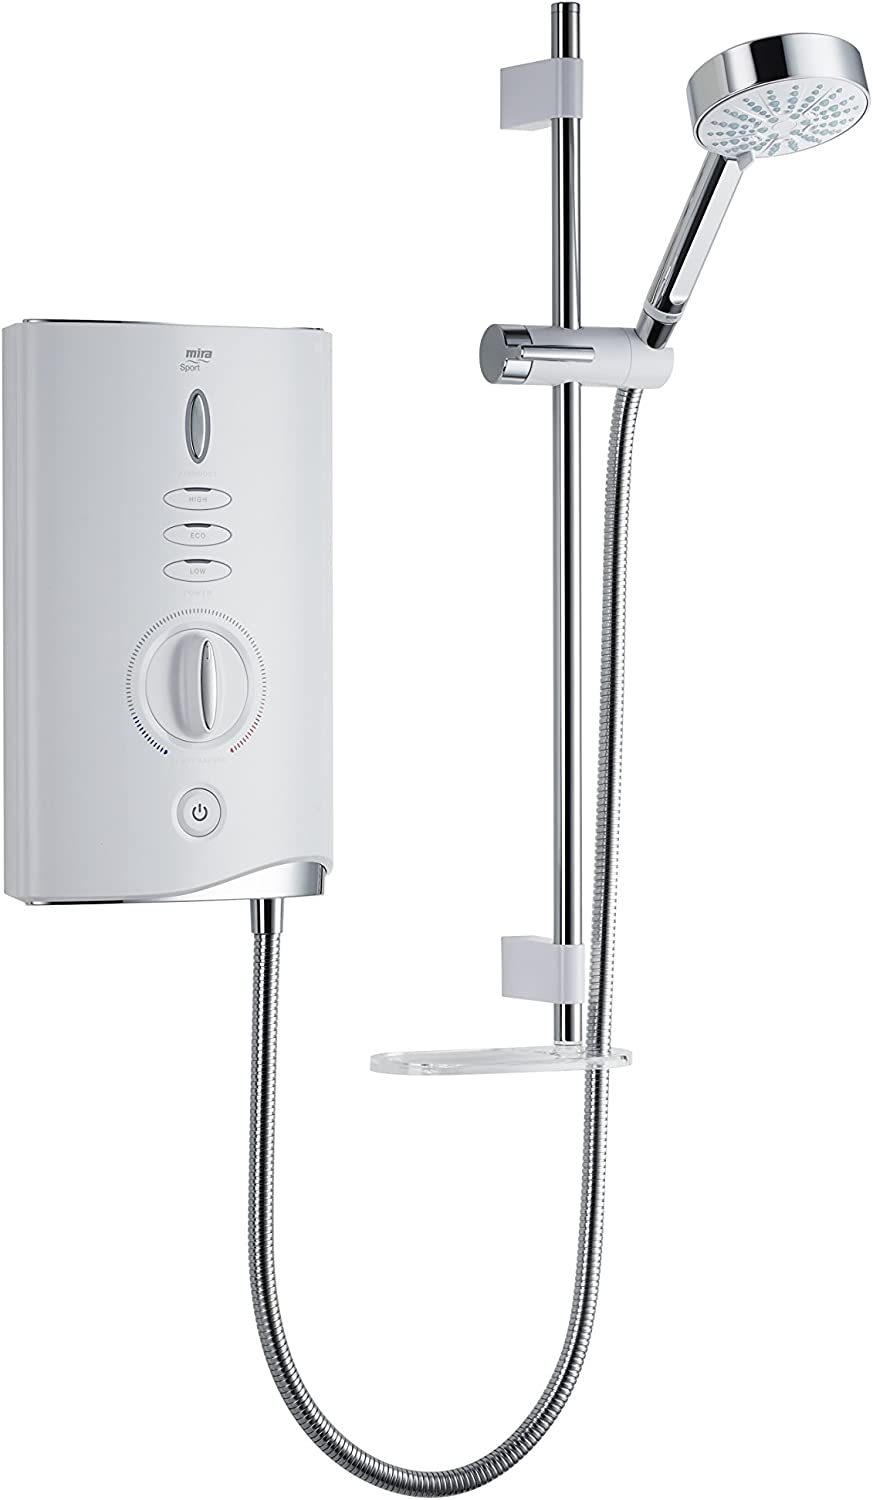 Mira Showers 1.1746.008 Sport Max 10.8 kW Electric Shower - White Chrome